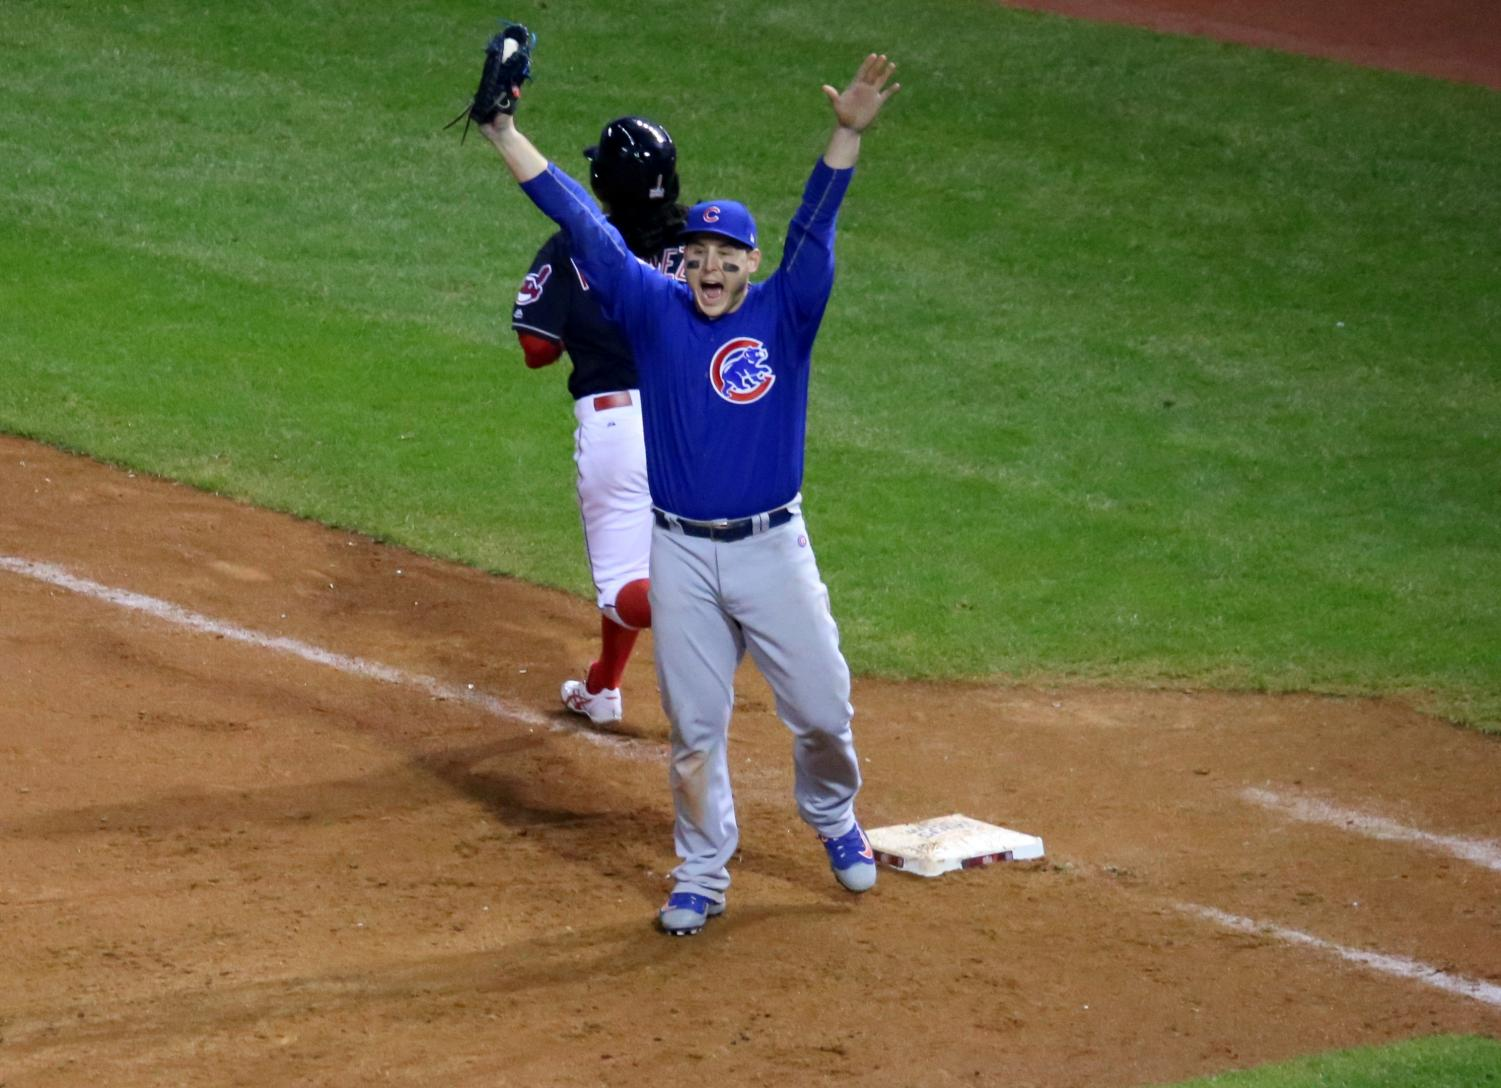 Celebrating the final out of the 2016 World Series, Anthony Rizzo jumps for joy! Either the Red Sox or Dodgers will be the next team to celebrate this accomplishment.